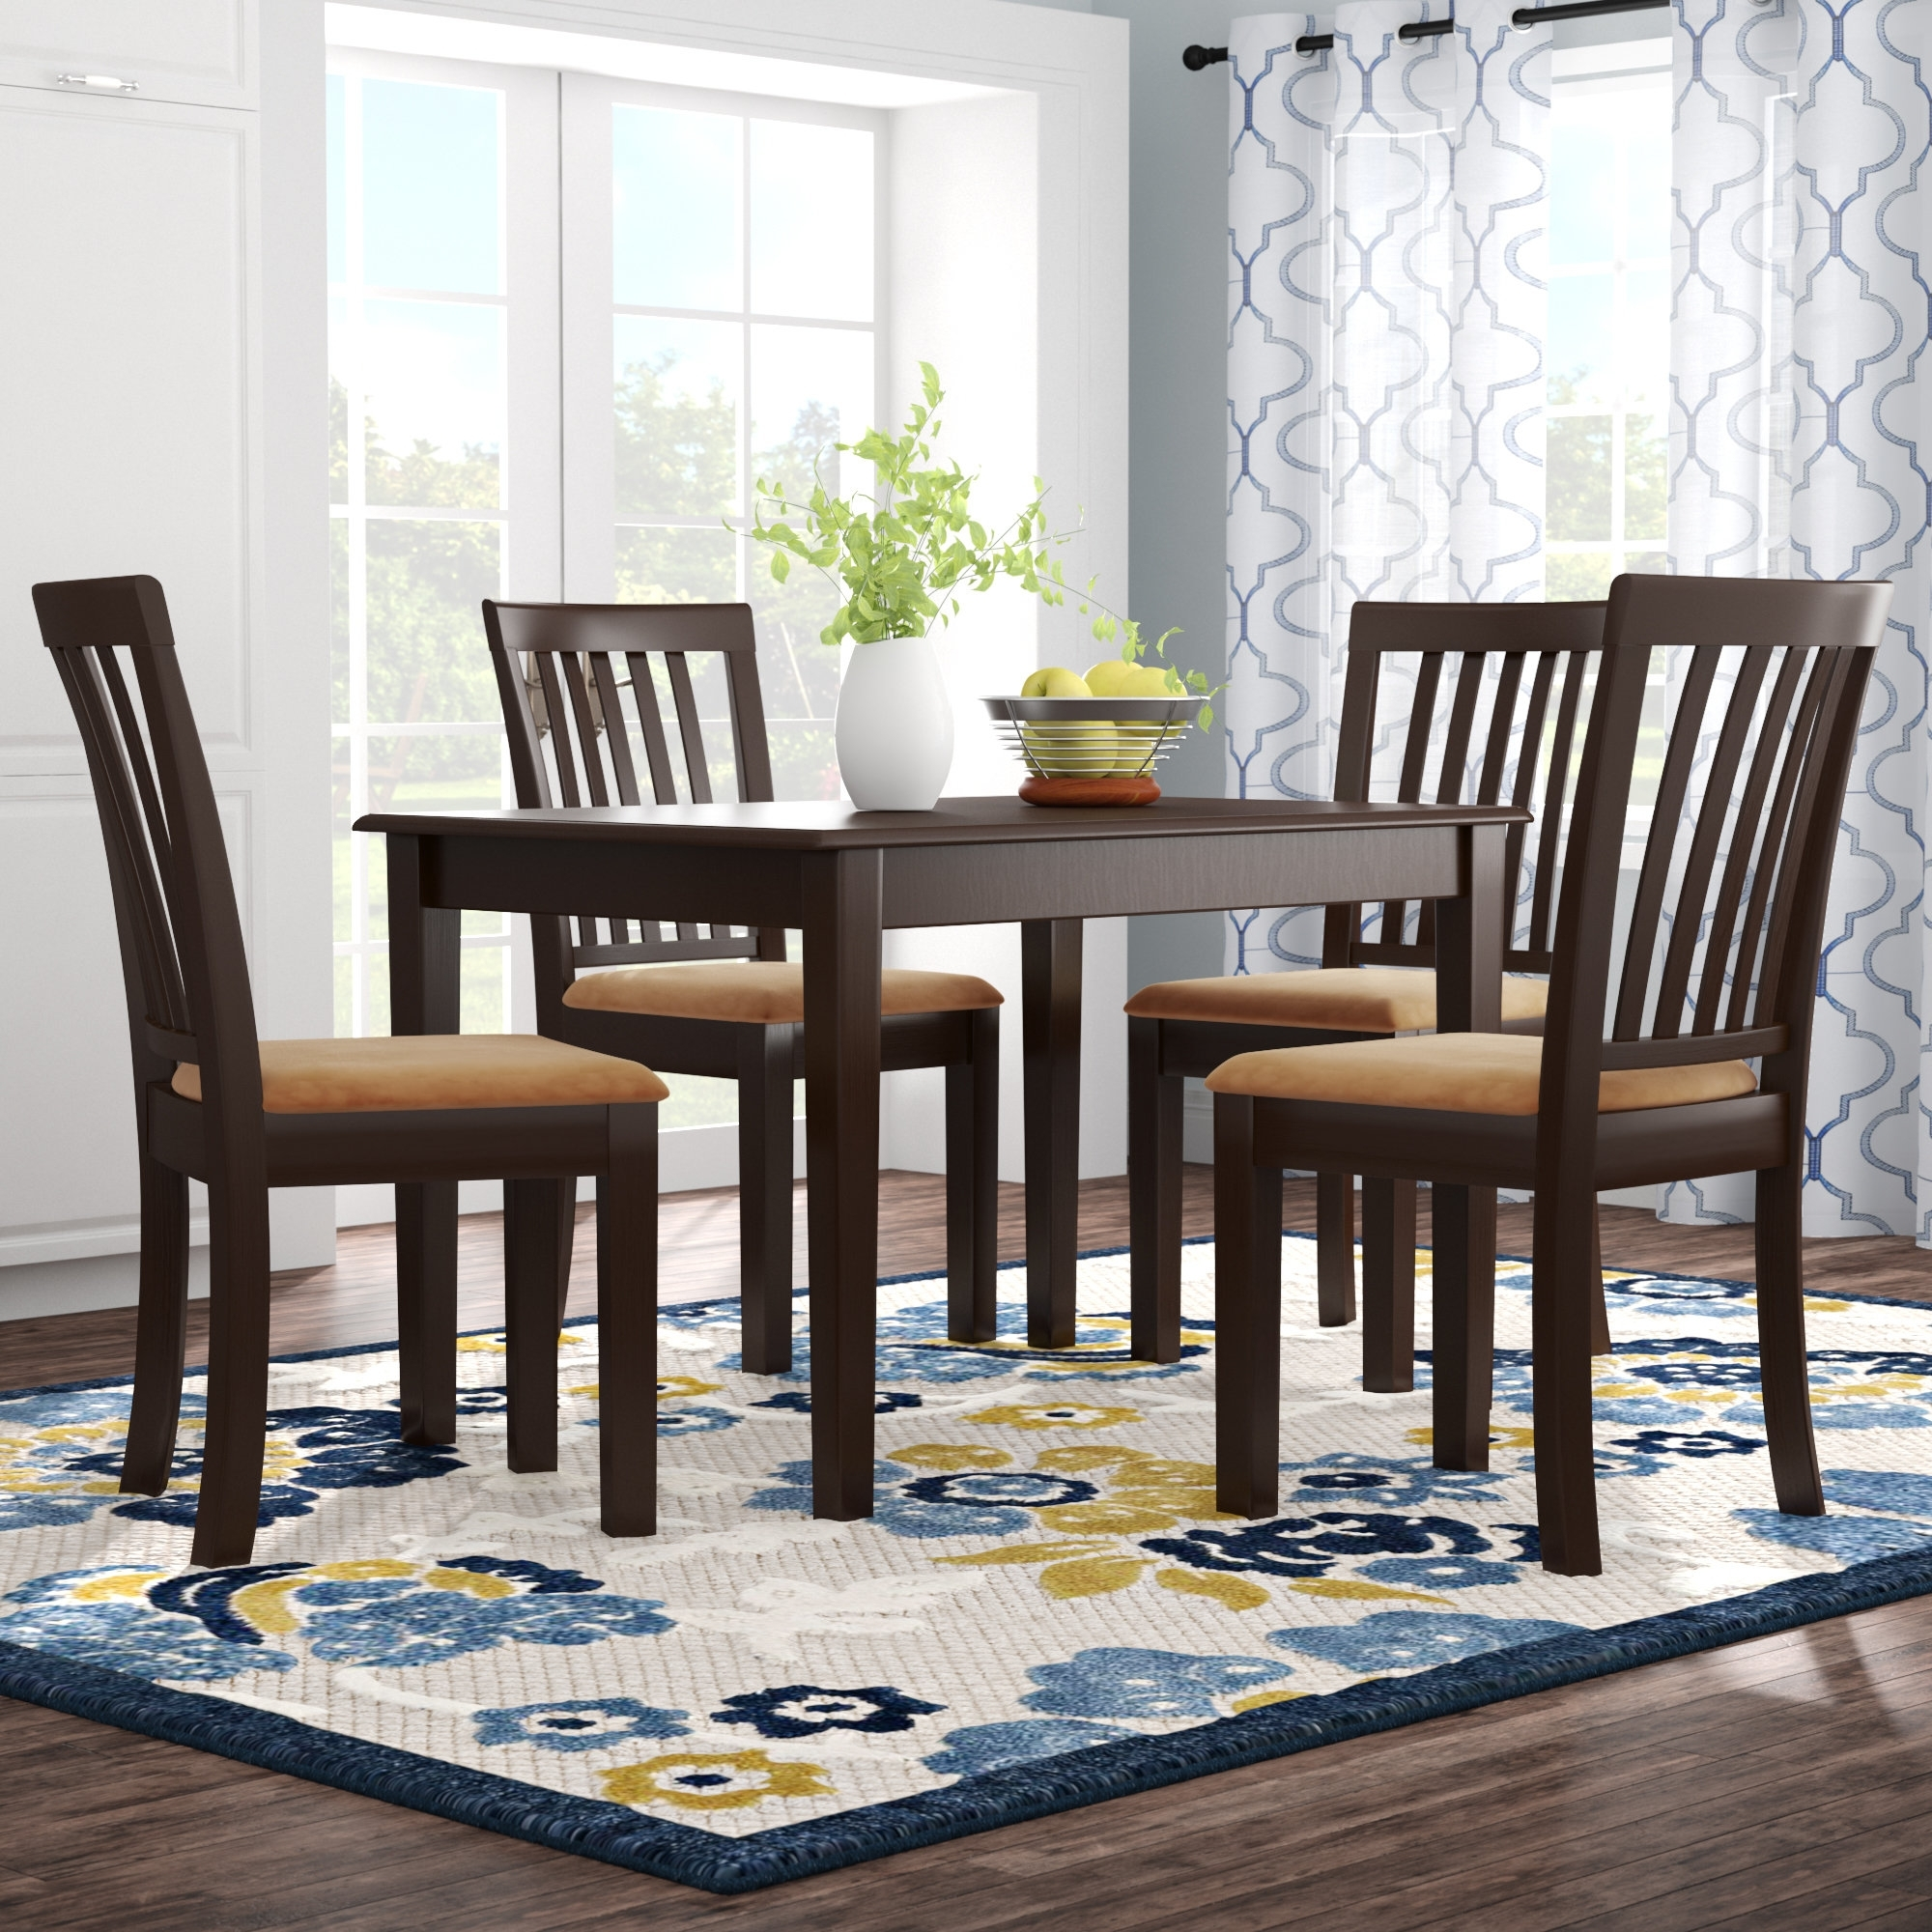 Andover Mills Oneill Modern 5 Piece Upholstered Dining Set & Reviews In Most Popular Craftsman 5 Piece Round Dining Sets With Uph Side Chairs (Image 3 of 20)